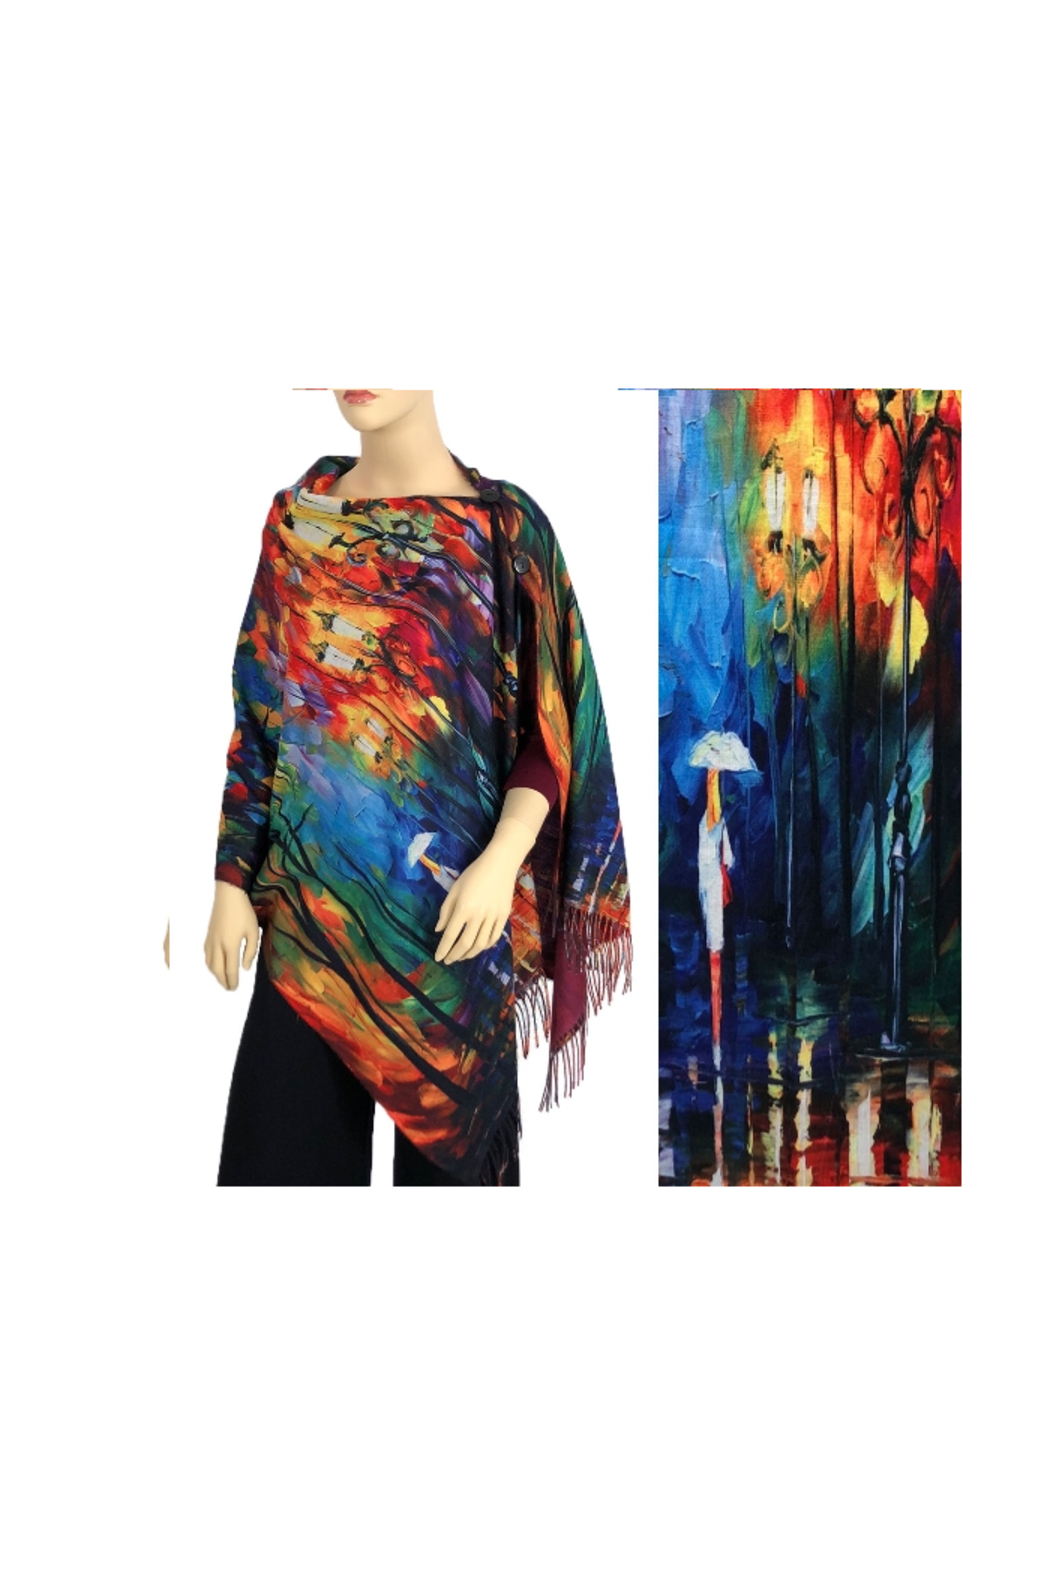 Magic Scarf Art Shawl in Suede Cloth -#12 - Front Full Image